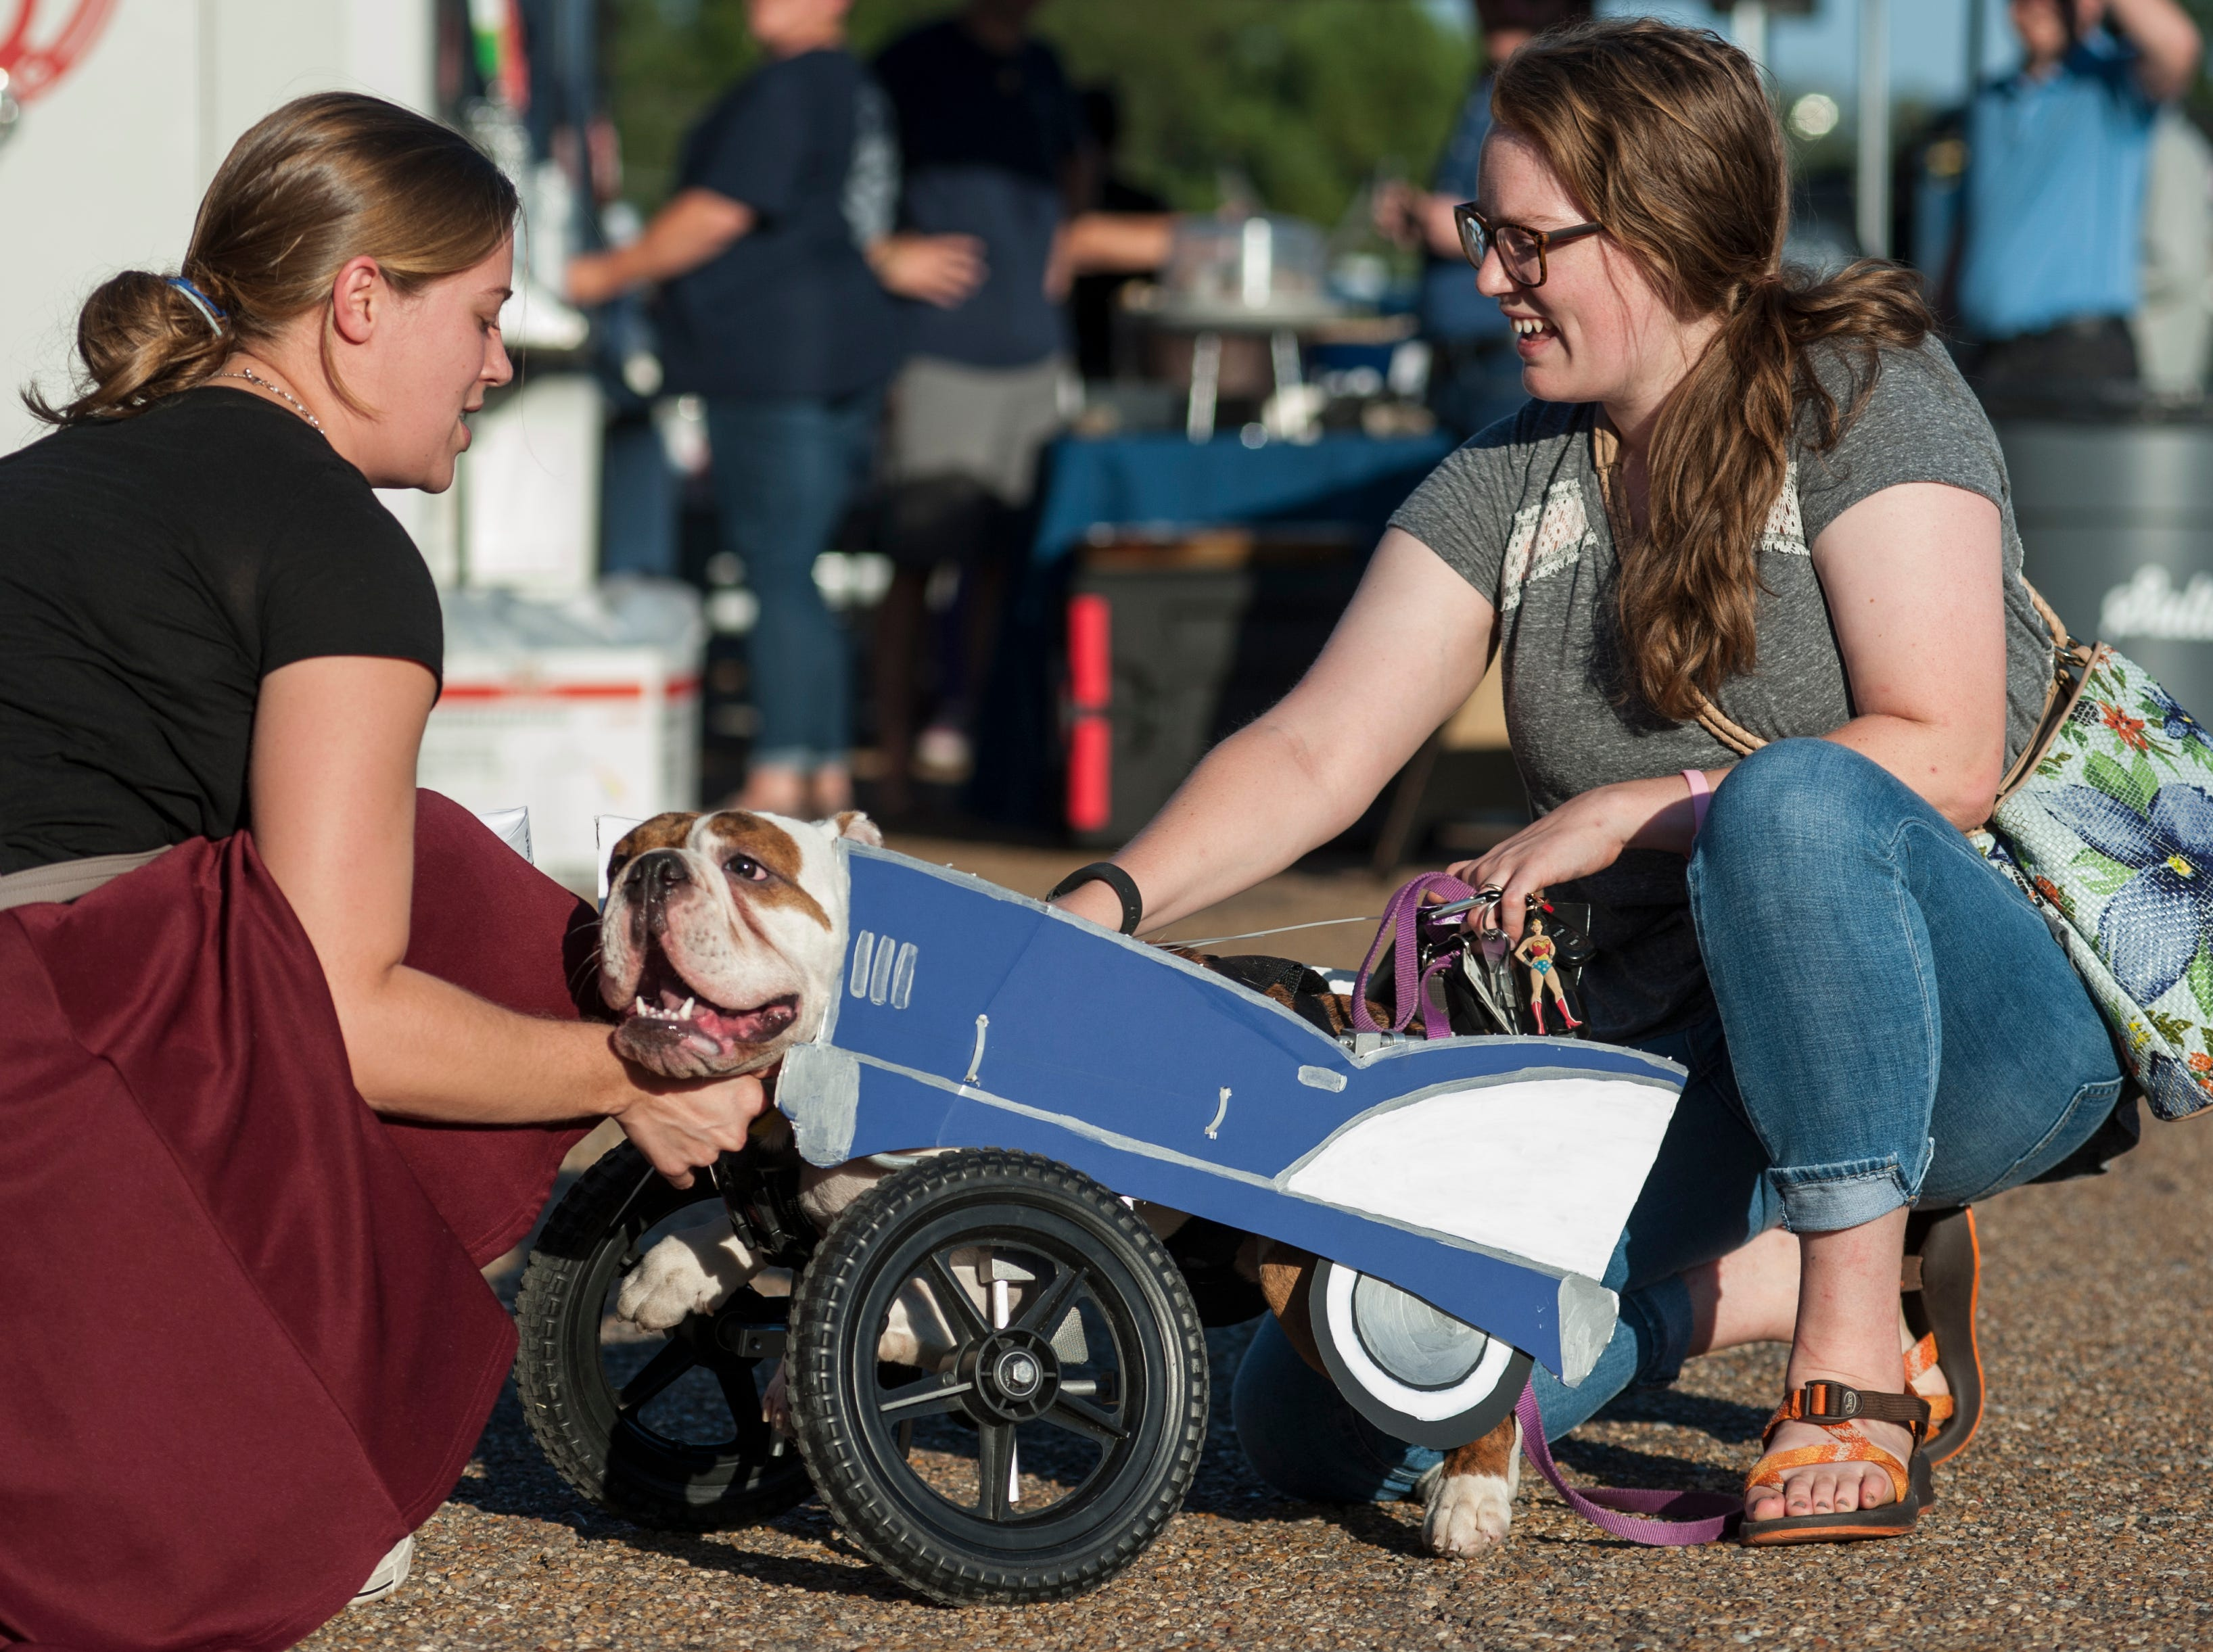 Caitlin Price left, of Brandon, and her sister Lana Mize, right, of Jackson, loves on Mize's dog, Linus, who is dressed as a car and showing off his wheels, all ready for the Halloween pet costume contest at Fondren After Five.